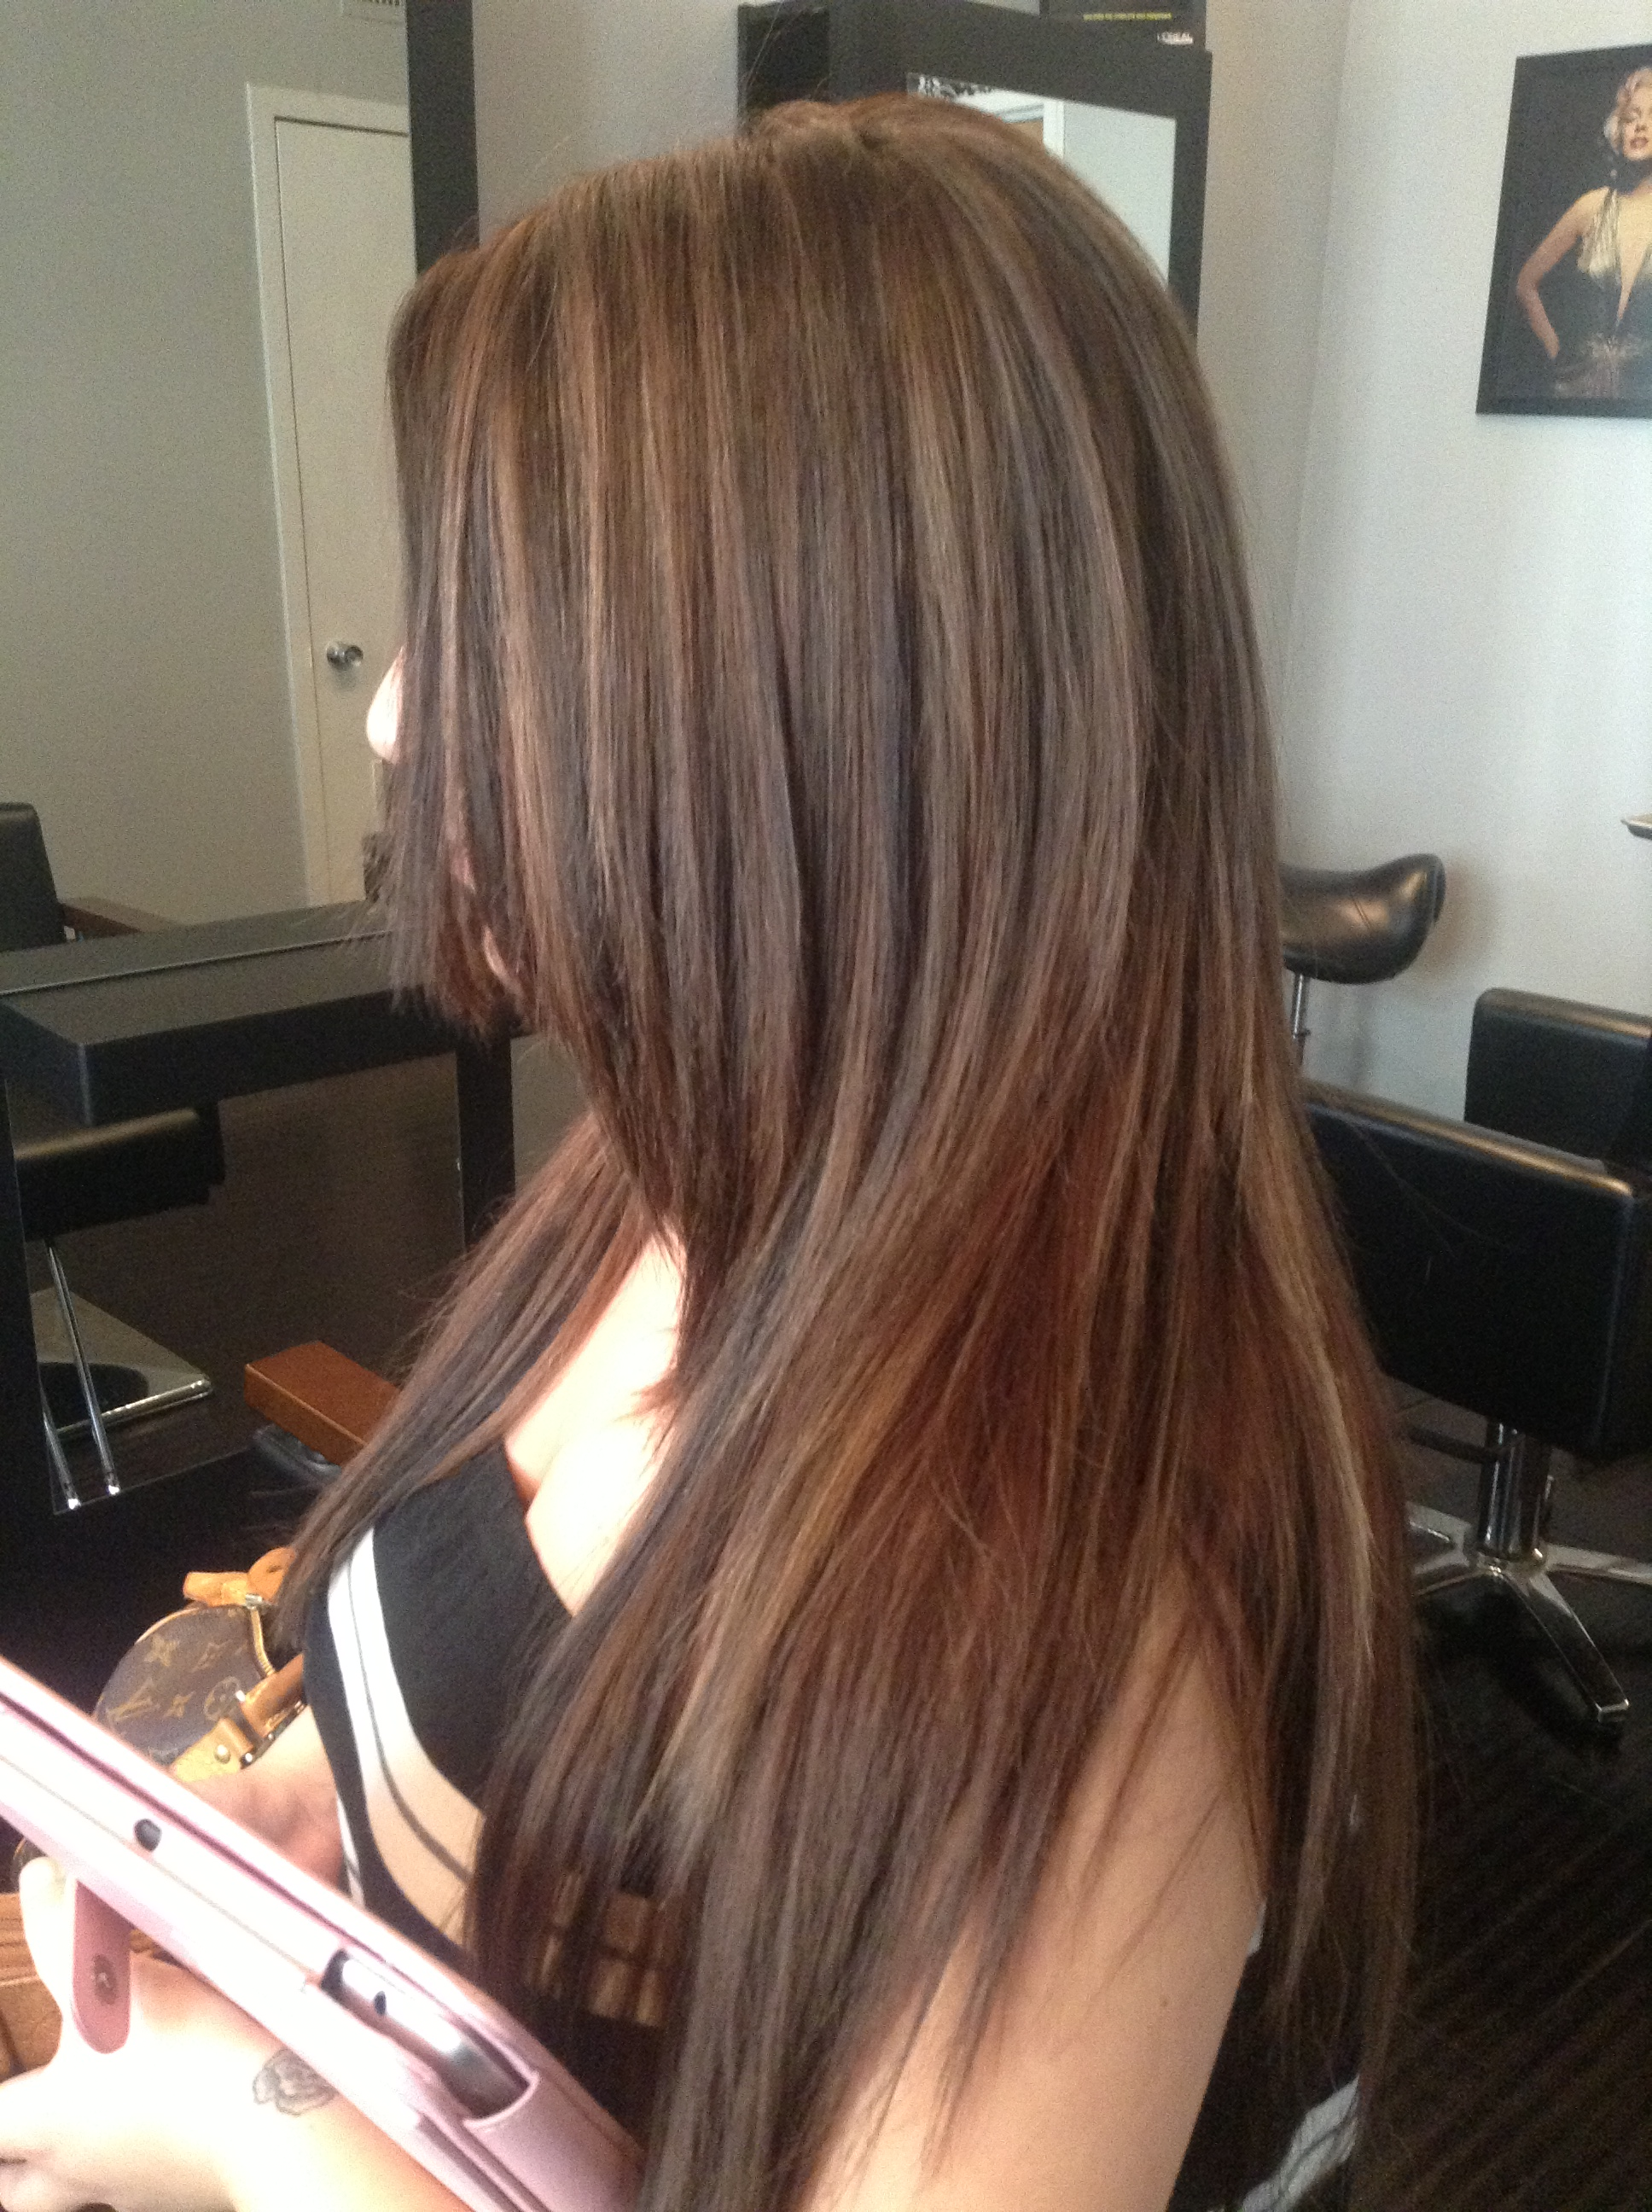 Hair Salon Highlights : ... Caramel Highlights  West Palm Beach Hair Salon Hair By Zaklina